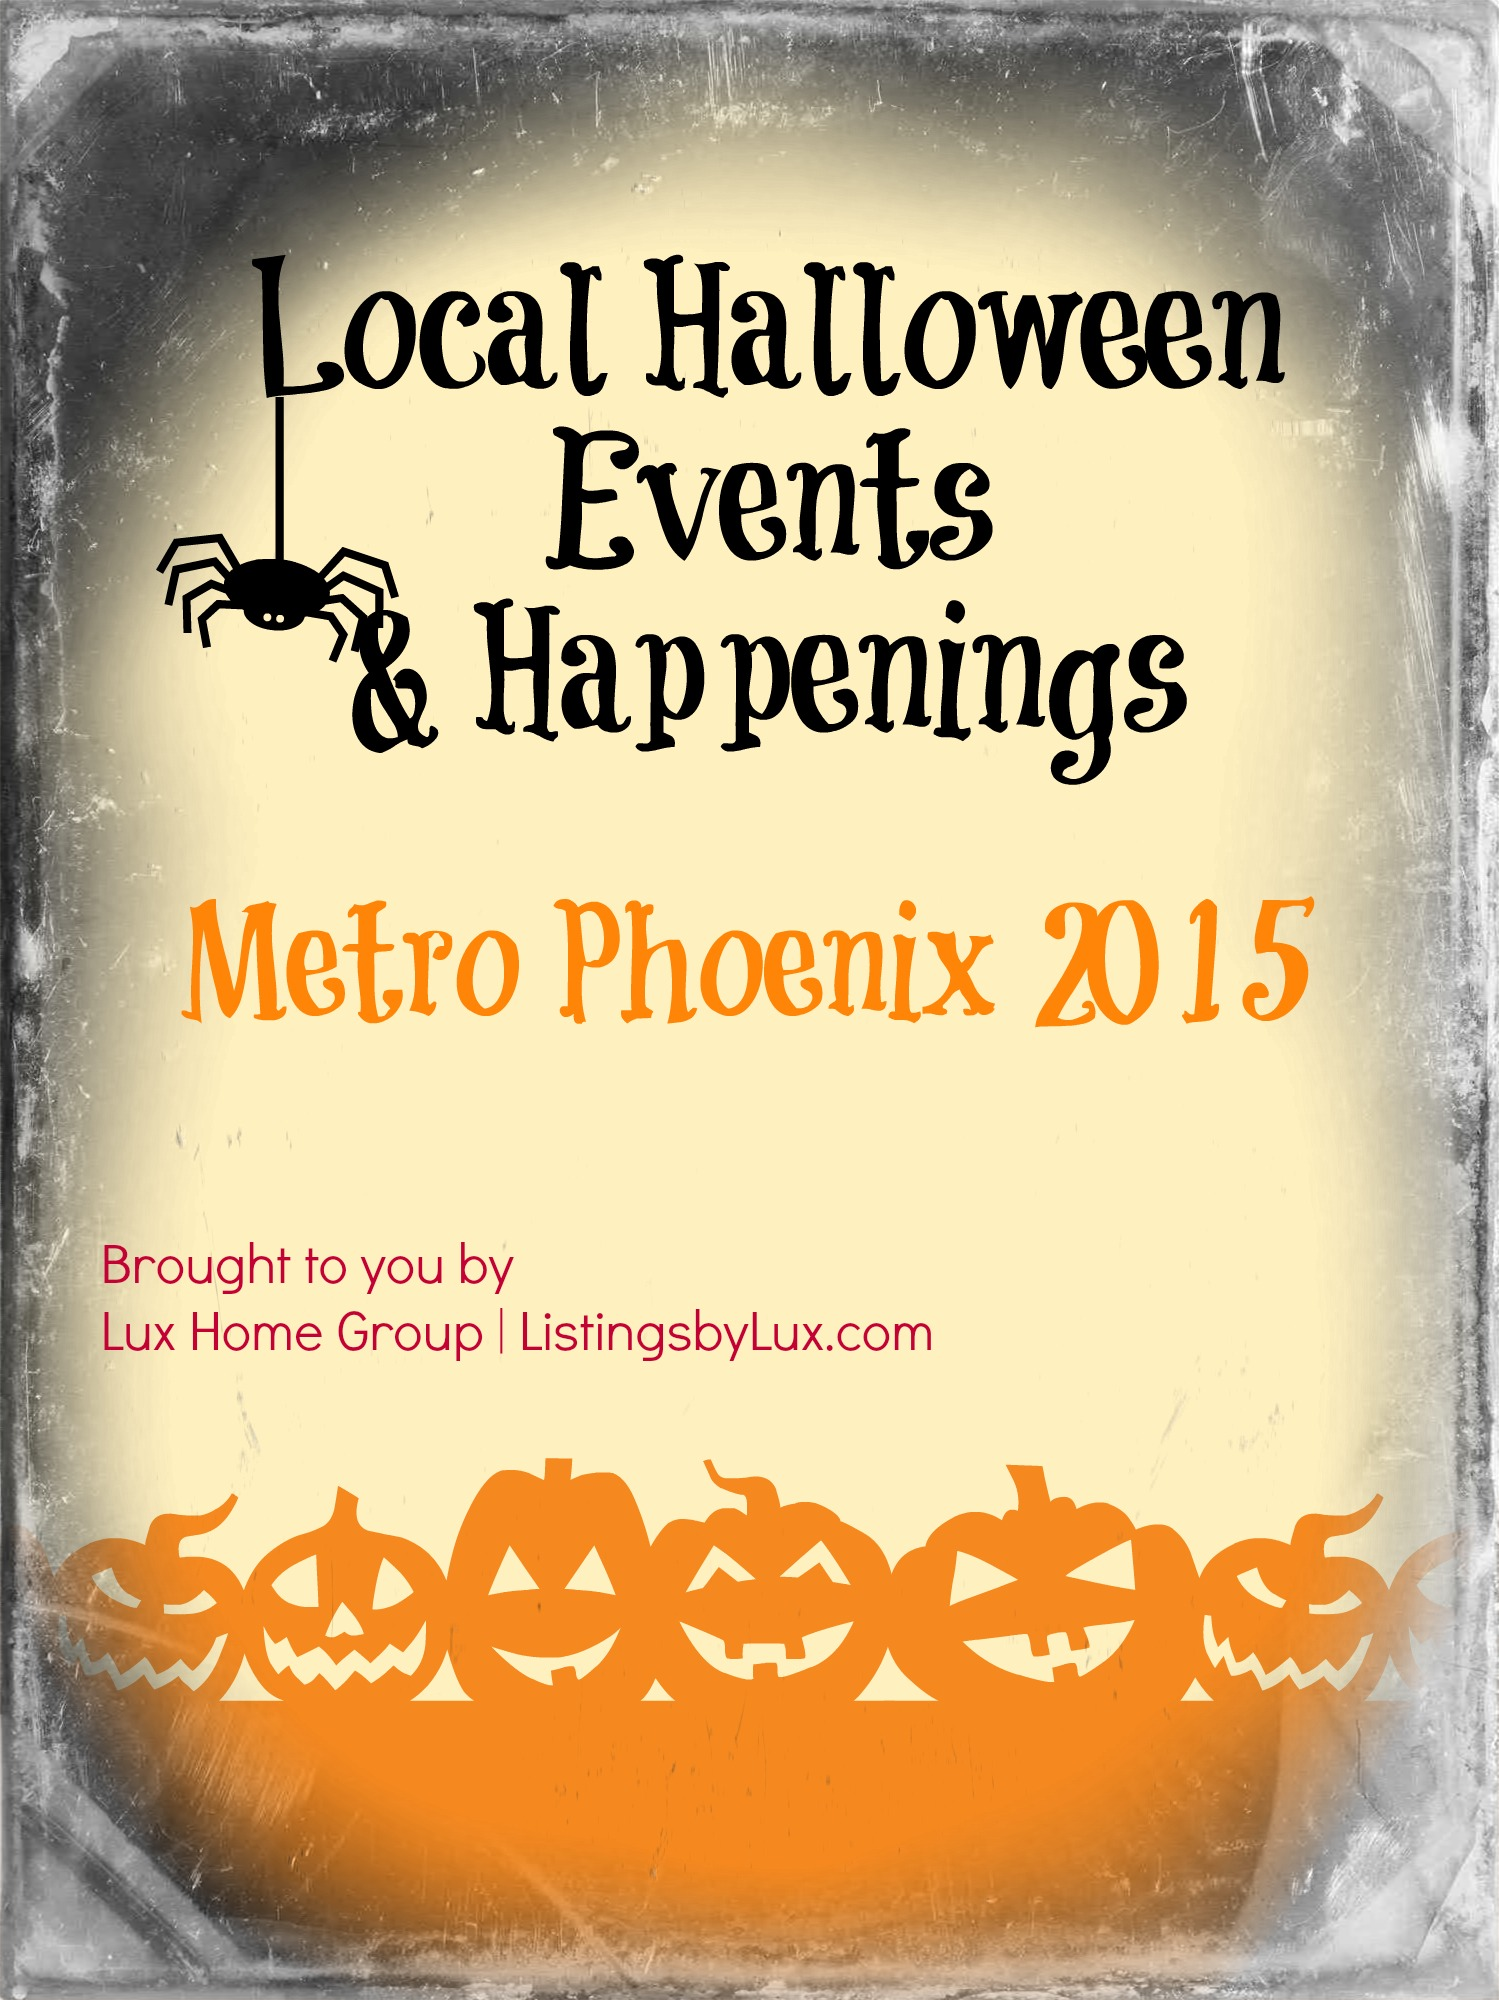 Local Halloween Family Events & Happenings - Metro Phoenix 2015